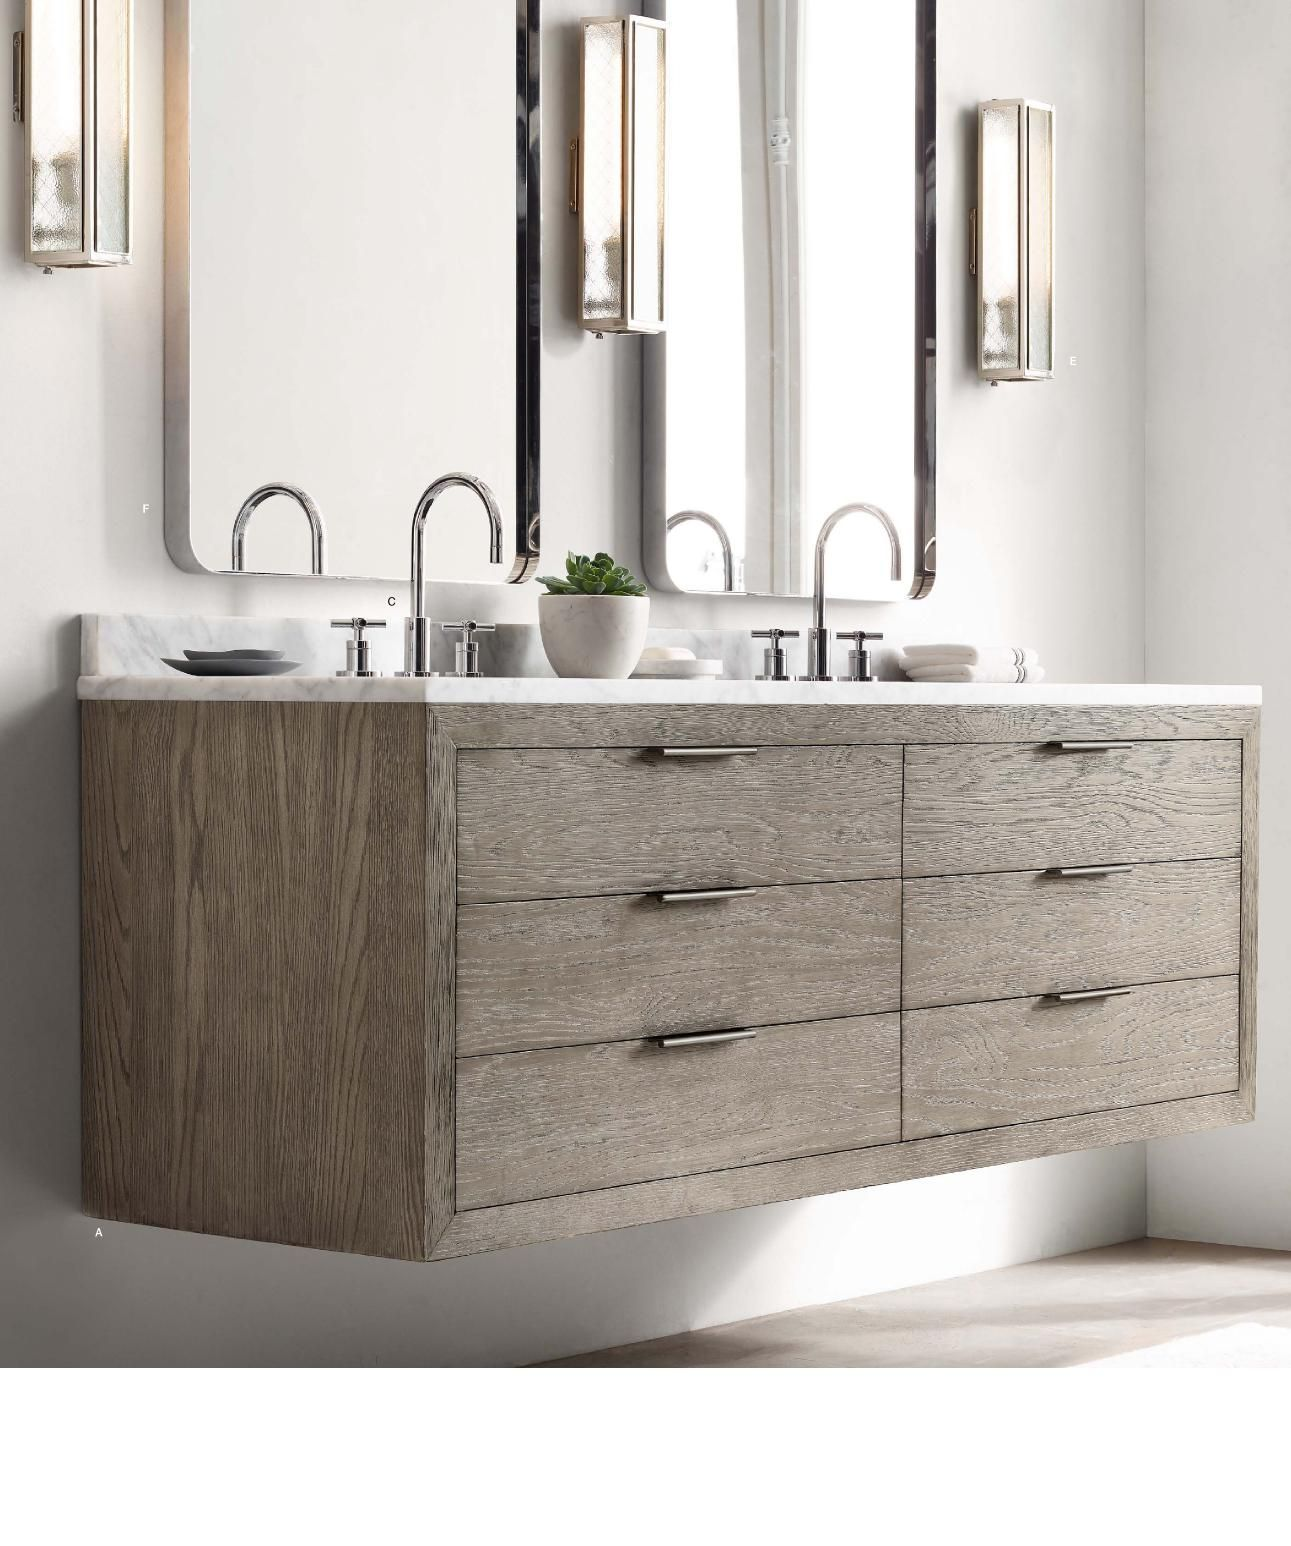 Rh Modern White Oak Floating Vanity New Home Remodel